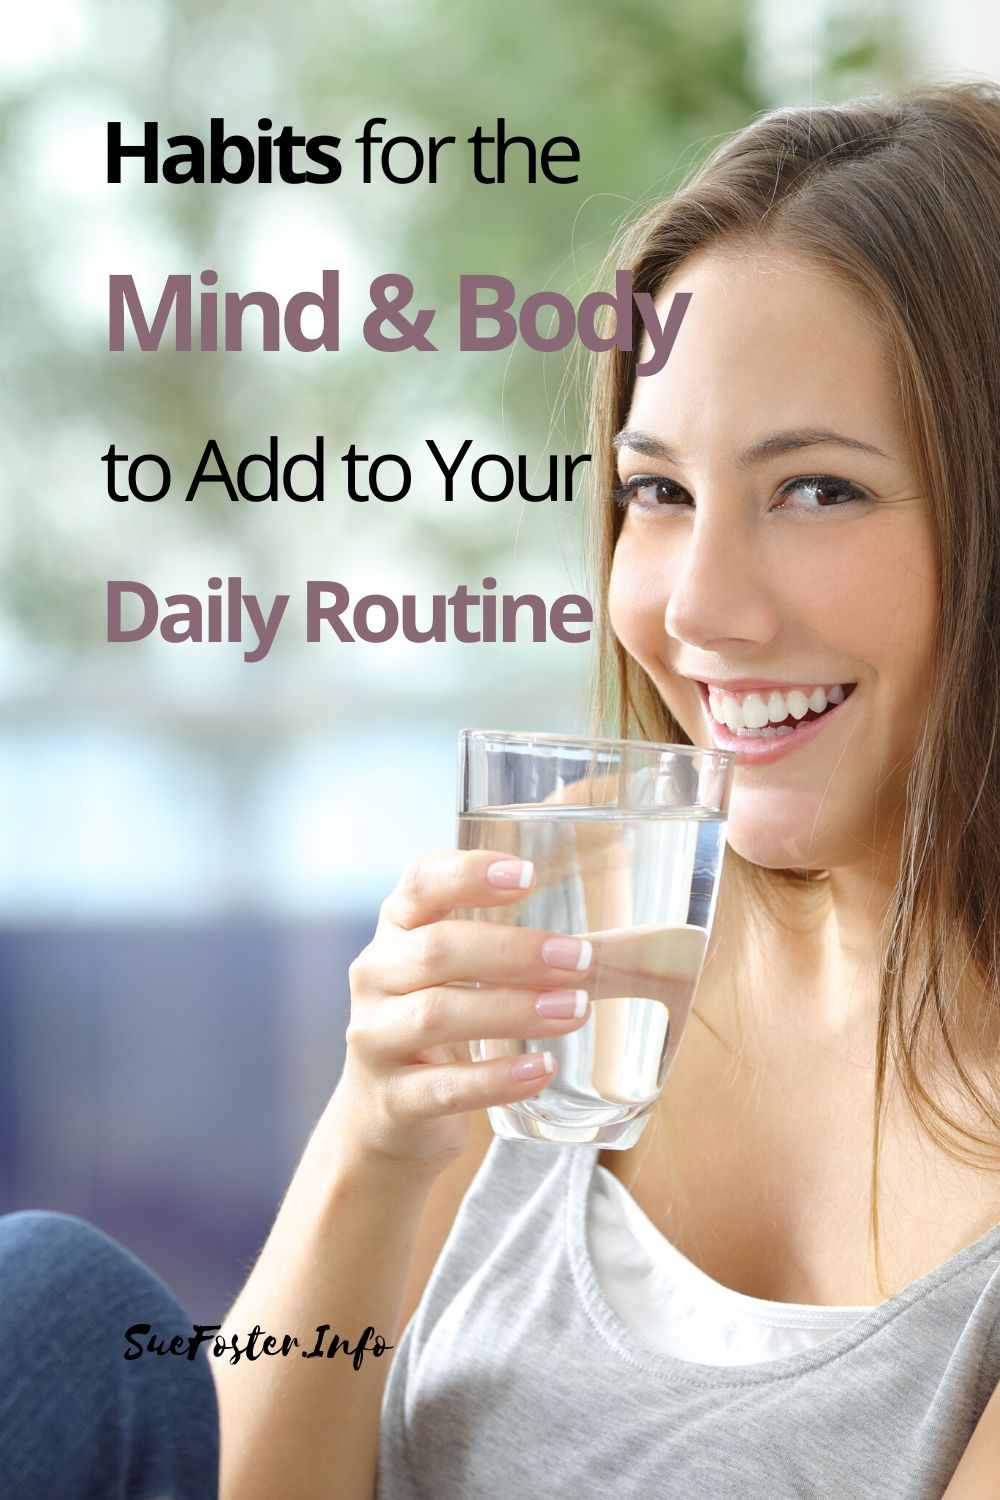 Healthy Habits You Should Learn for Your Mind and Body